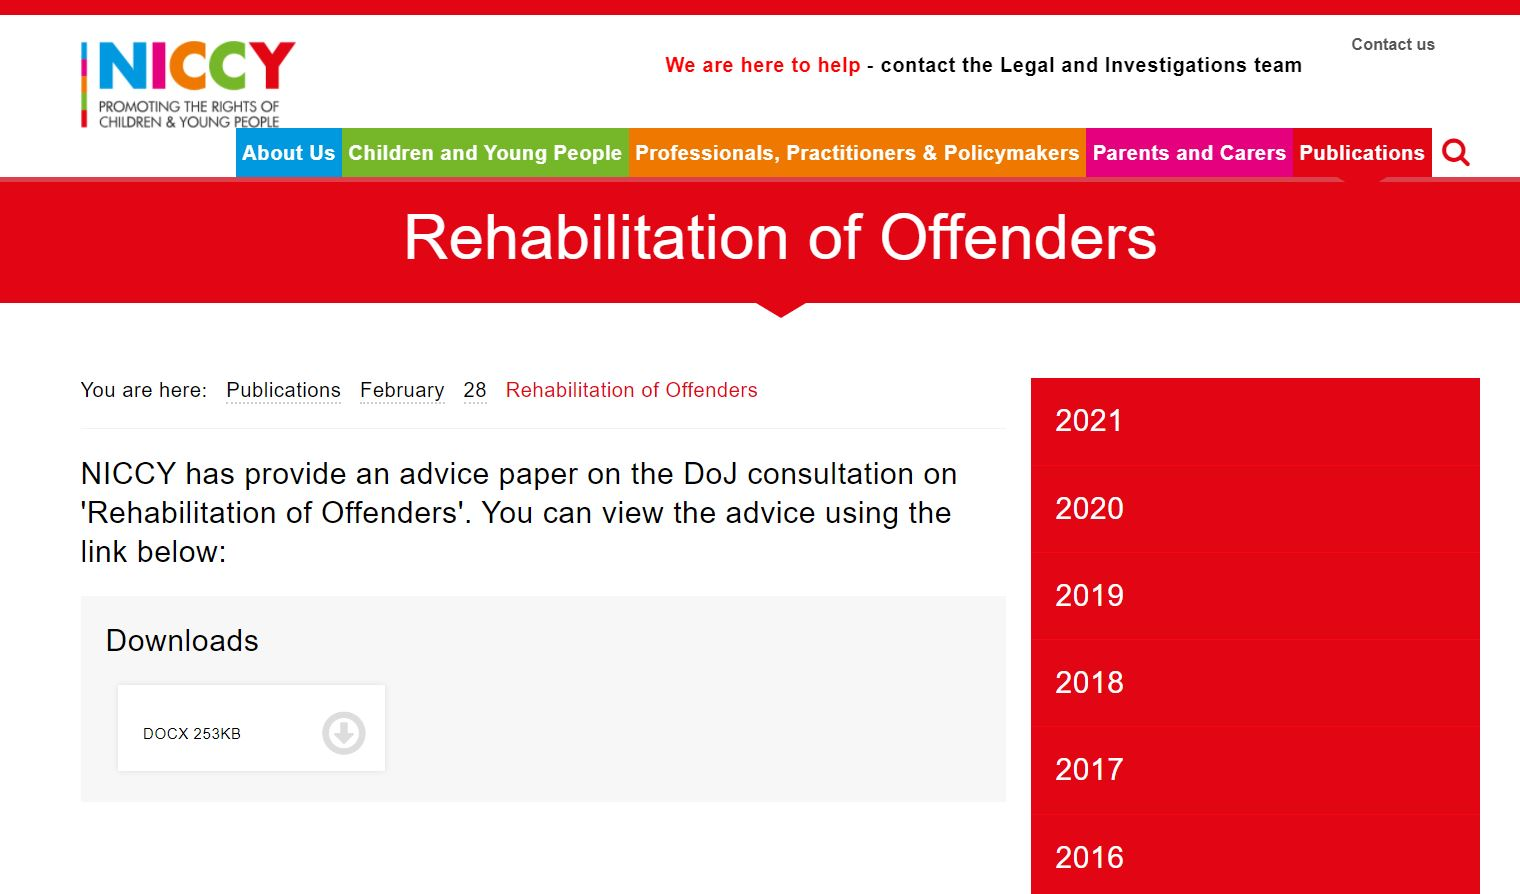 Image of Rehabilitation of Offenders